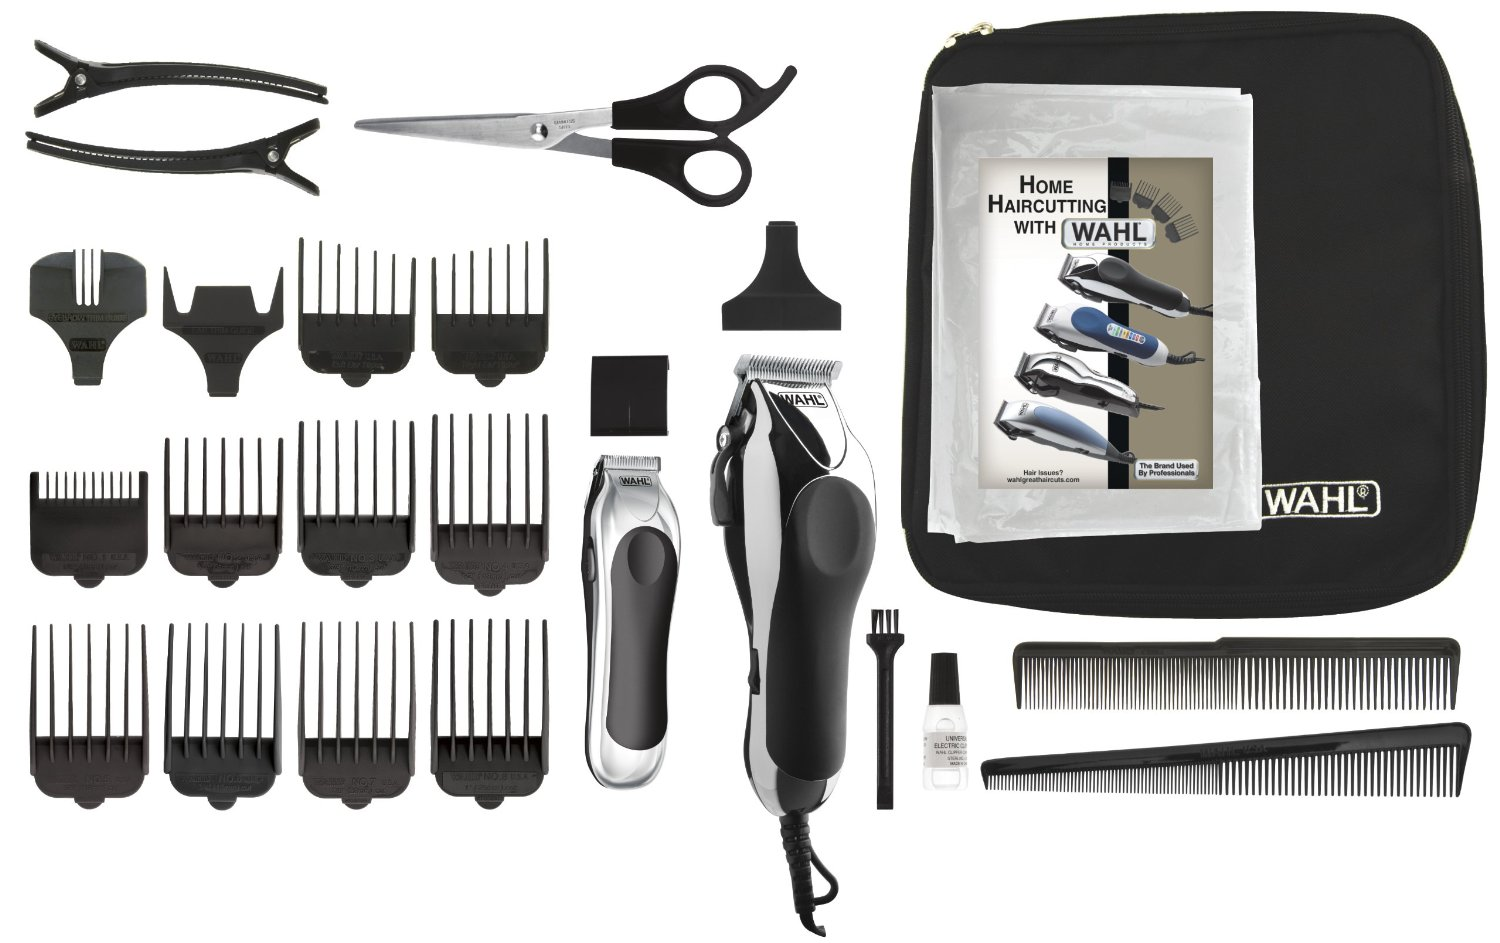 wahl clippers kit